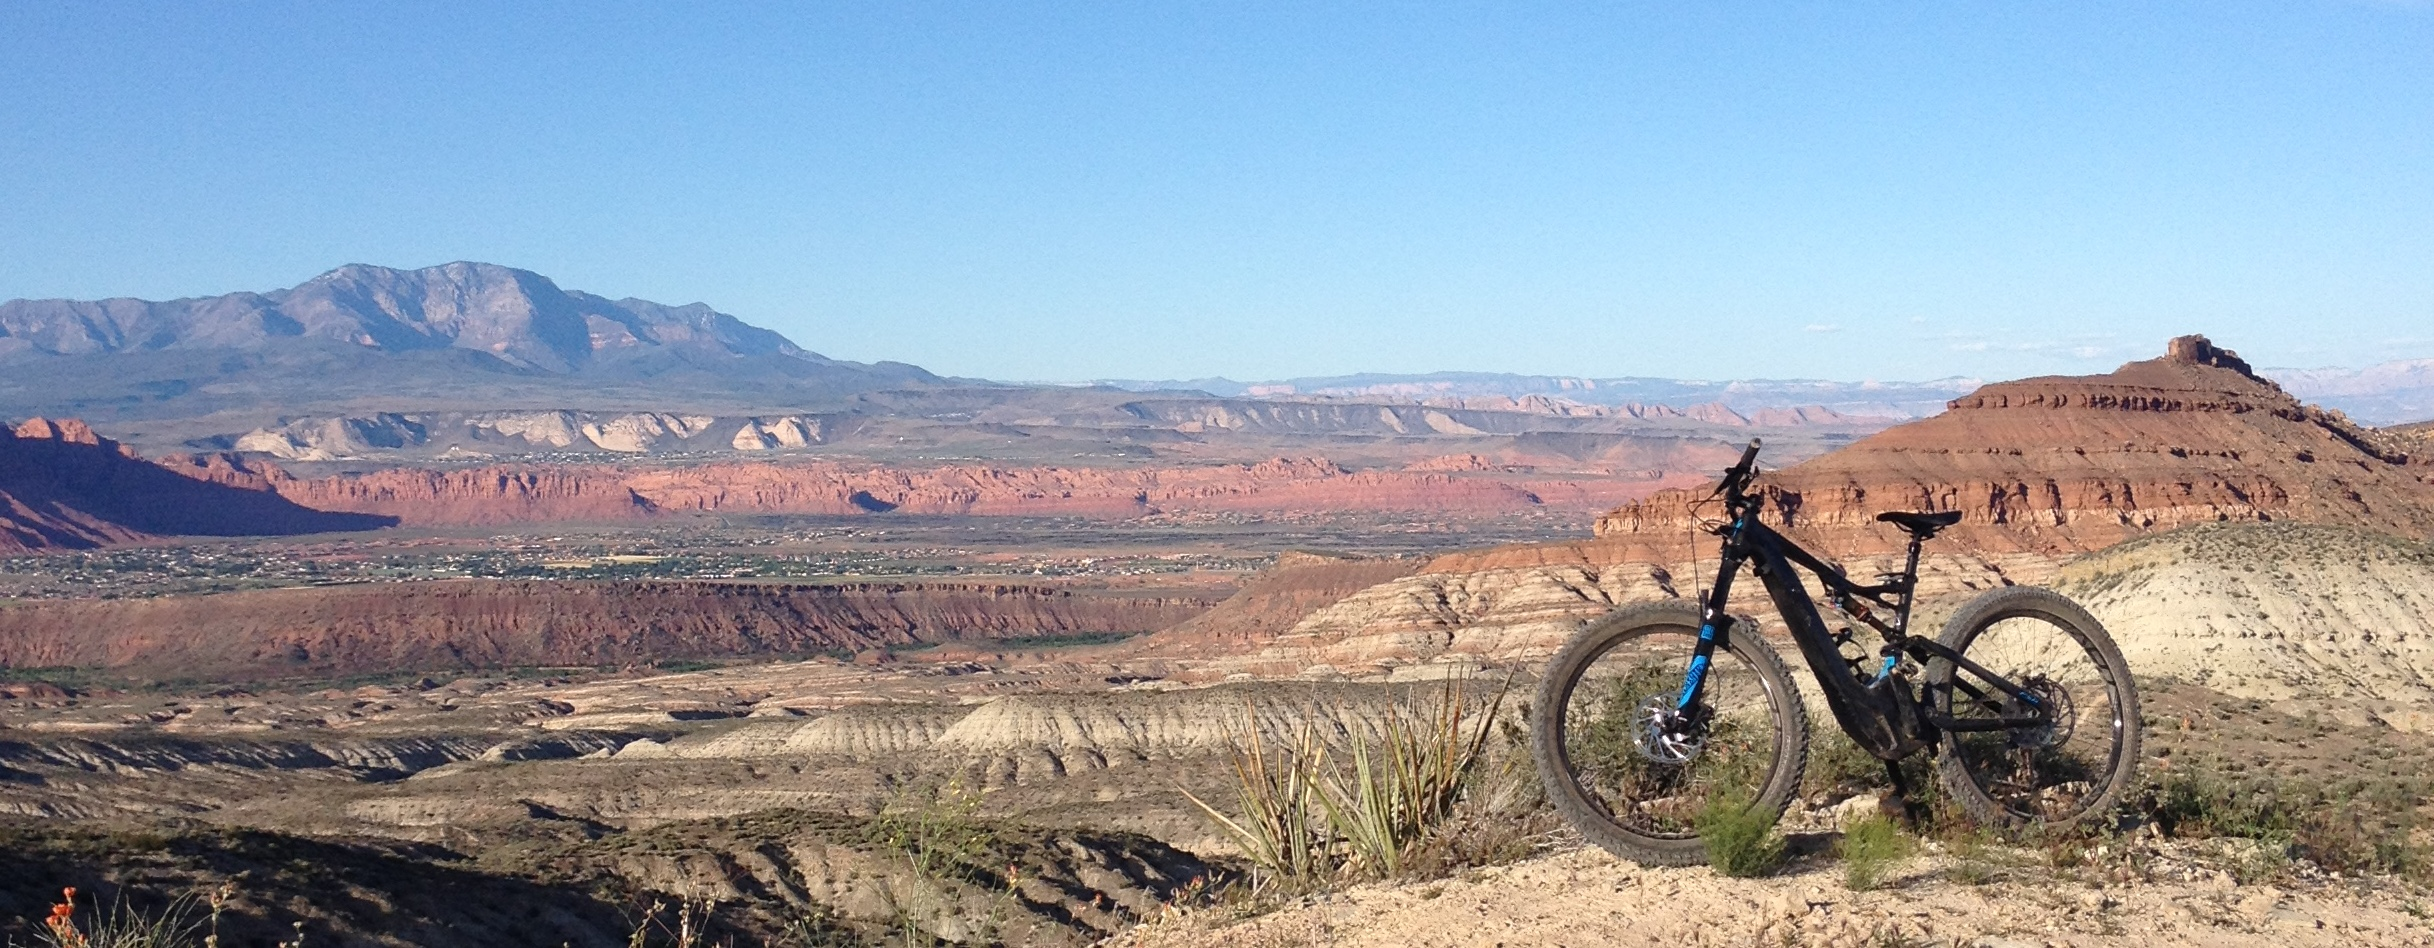 Specialized's Turbo Levo in its natural habitat, Cove Wash, Southern Utah | Photo by Mitch Curwen, St. George News